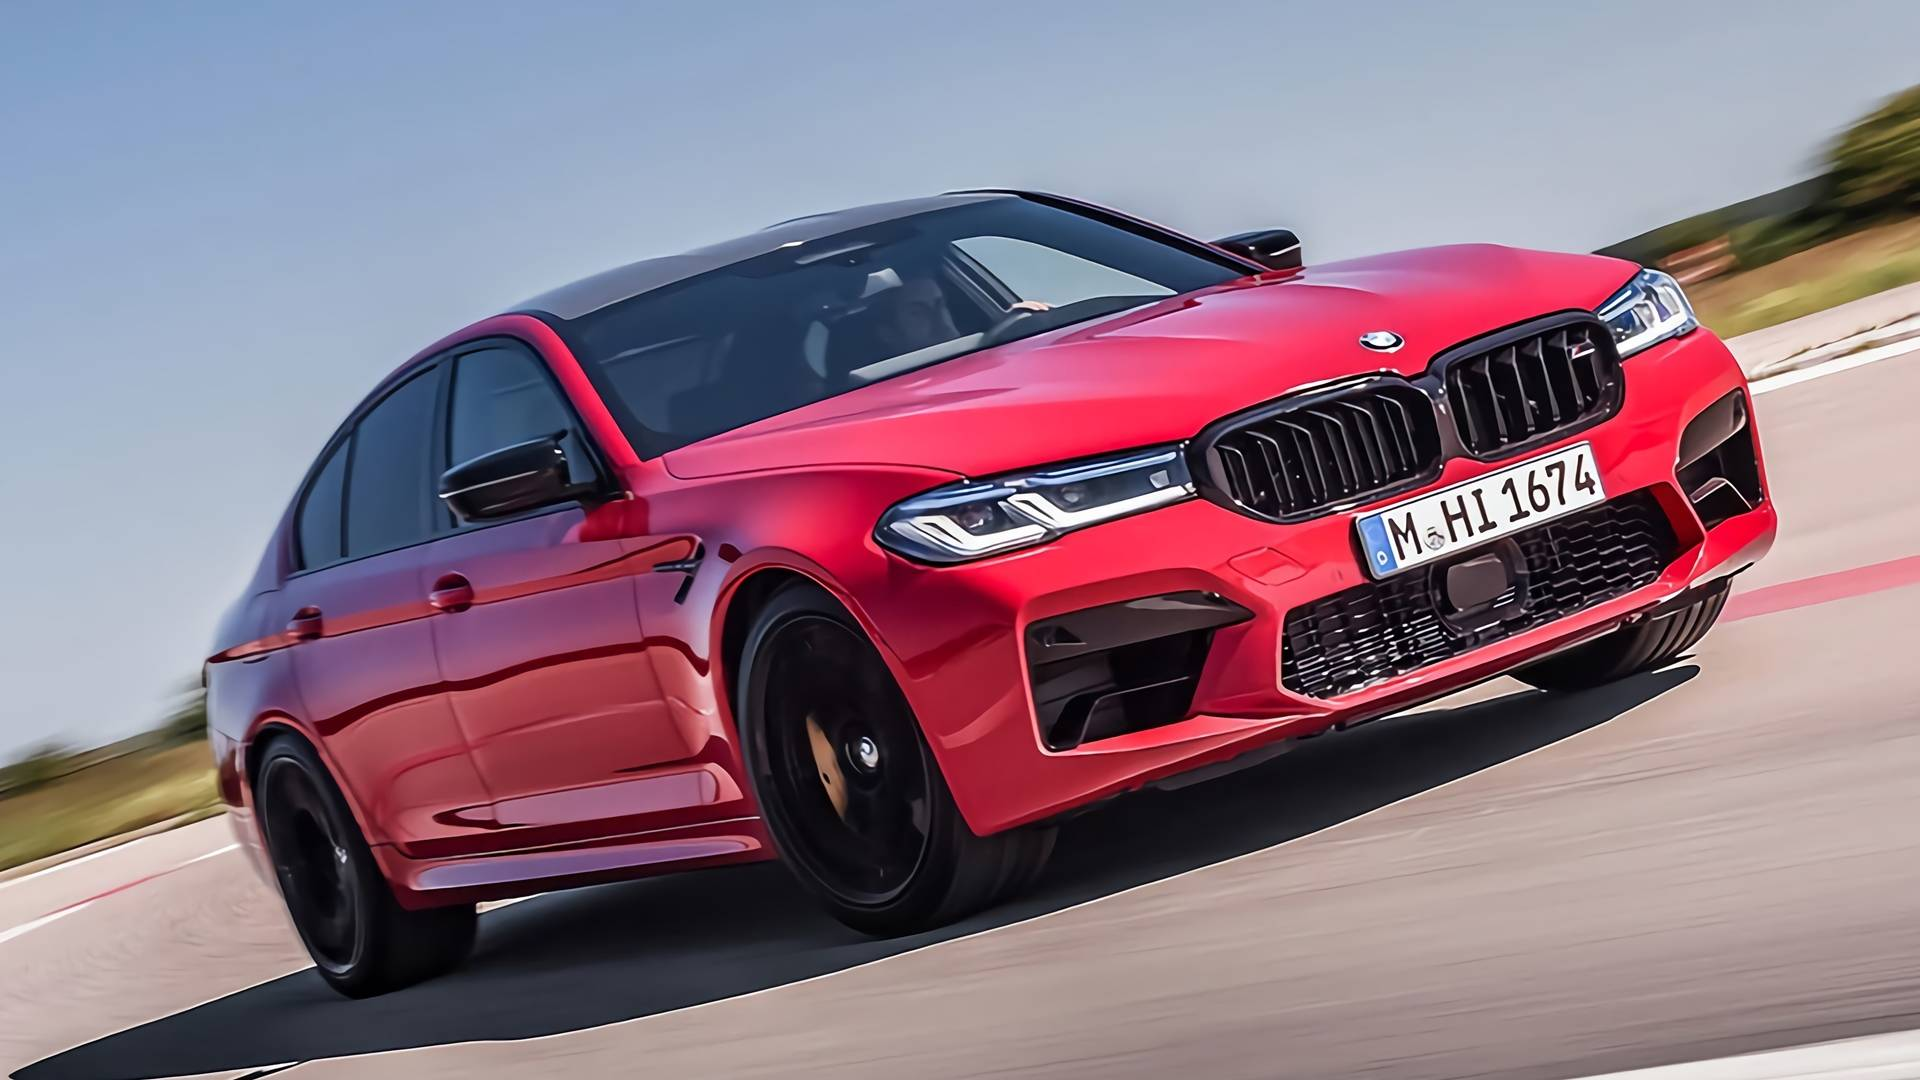 Following a series of leaked spy shots, the facelifted BMW M5 has finally celebrated its official premiere. Notable changes include the new 5 Series styling and upgraded suspension, among other things.